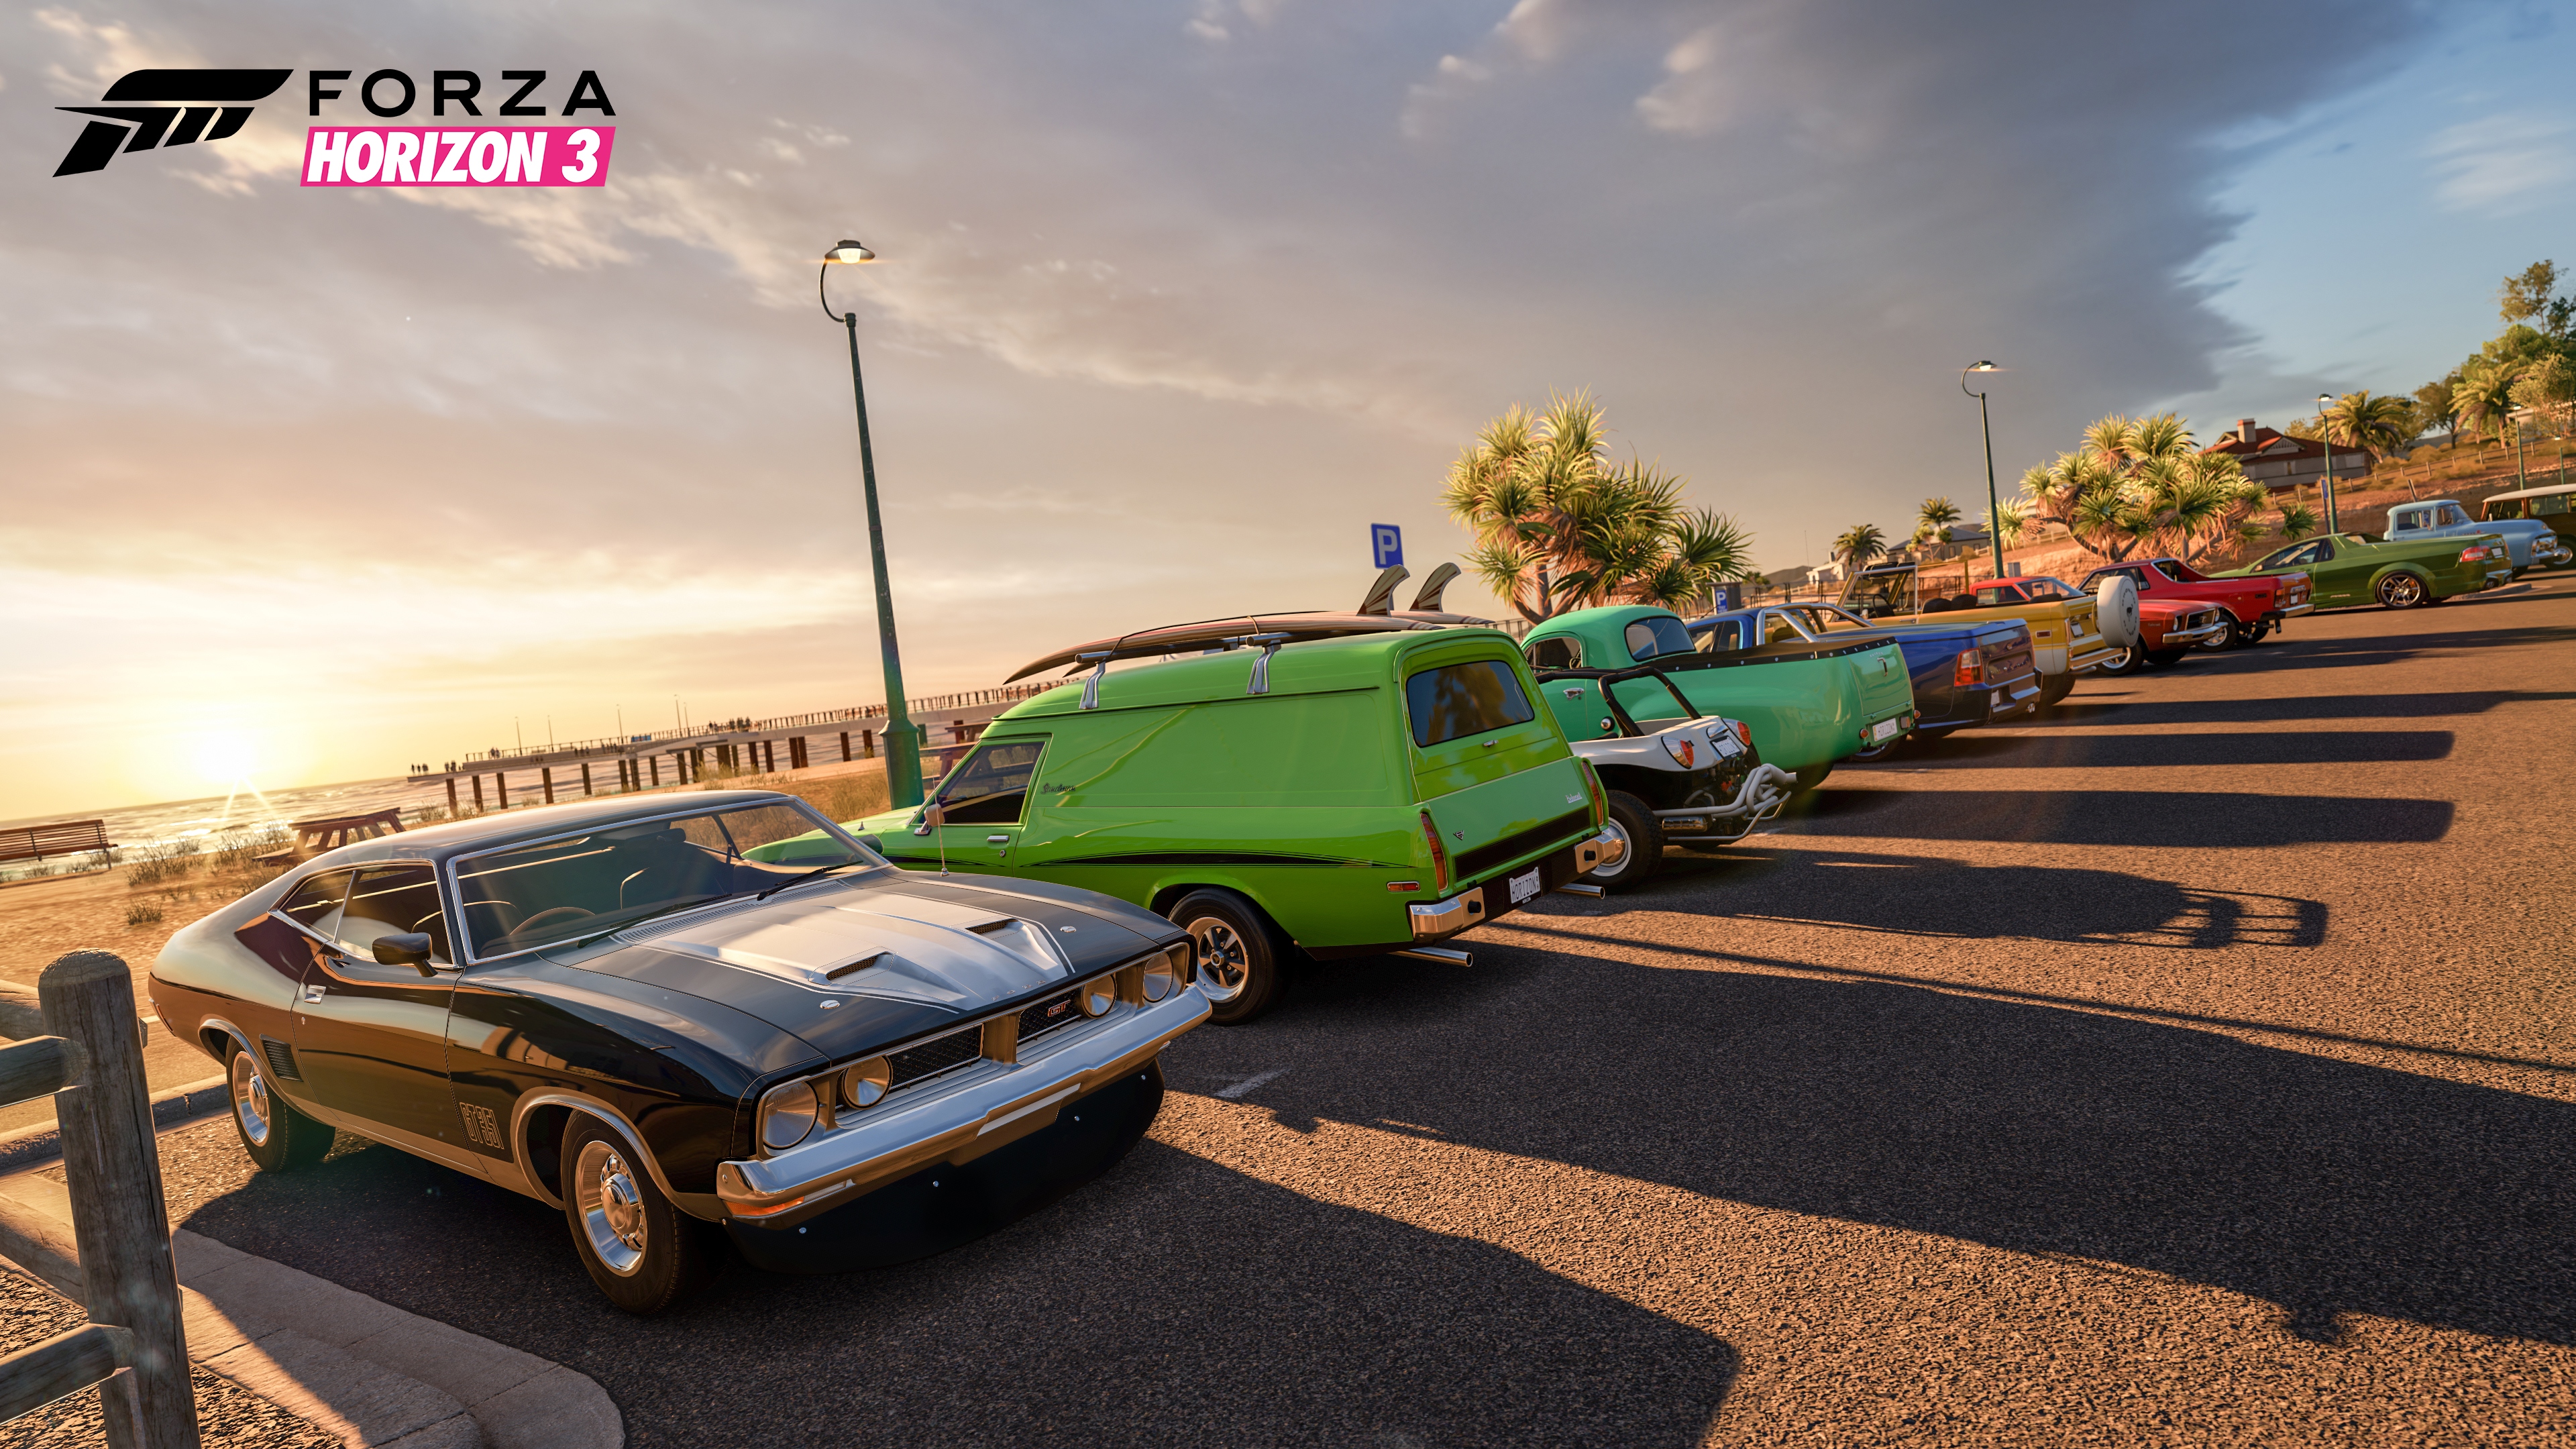 Beach Parking in Forza Horizon 3